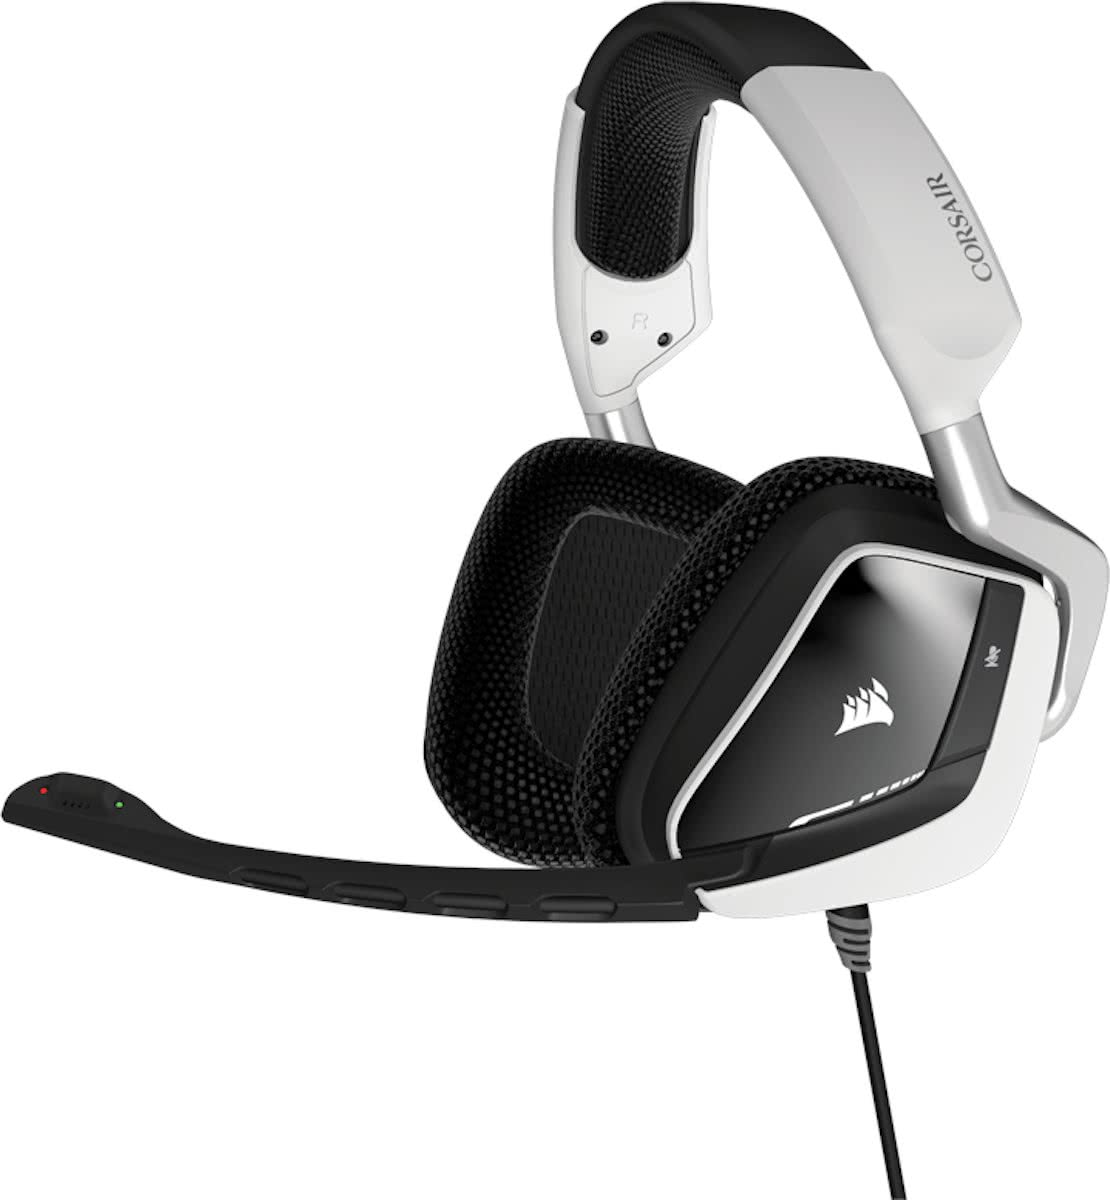 Void USB Dolby 7.1 - Gaming Headset - RGB - PC